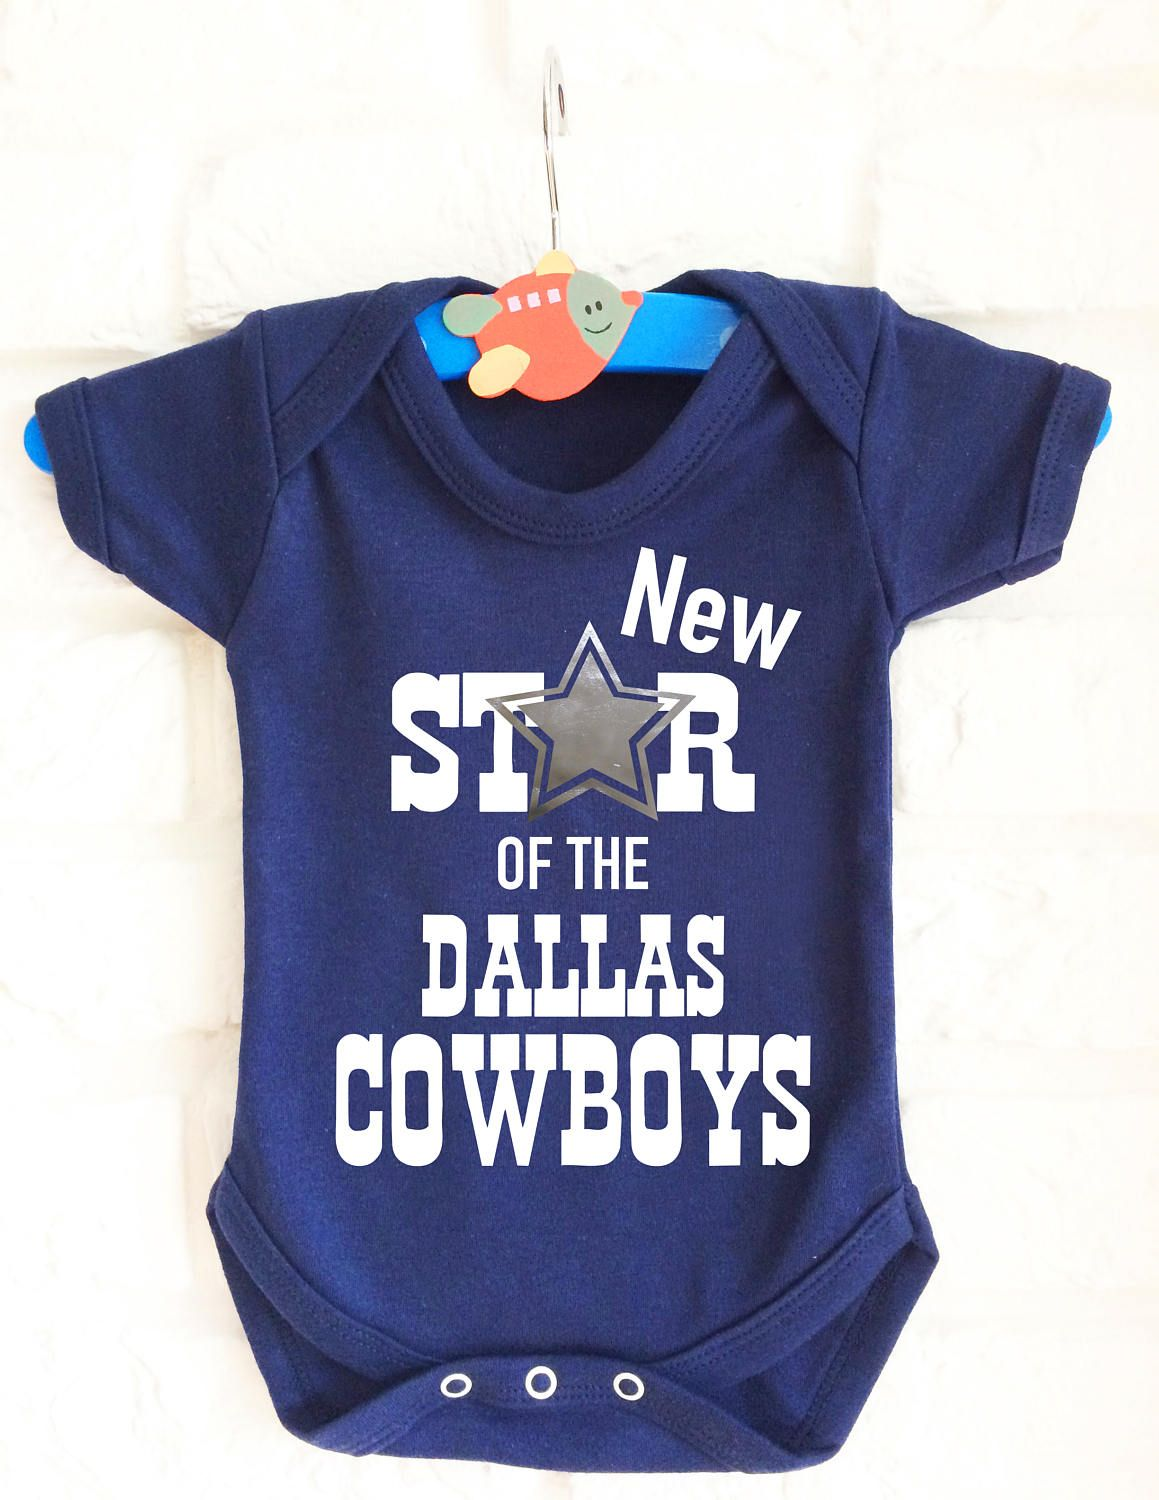 76ce4b51fc168 American football Dallas Cowboys inspired baby's blue baby grow onesie  bodysuit. Very cute :) by MumKnowsBabyGrows on Etsy